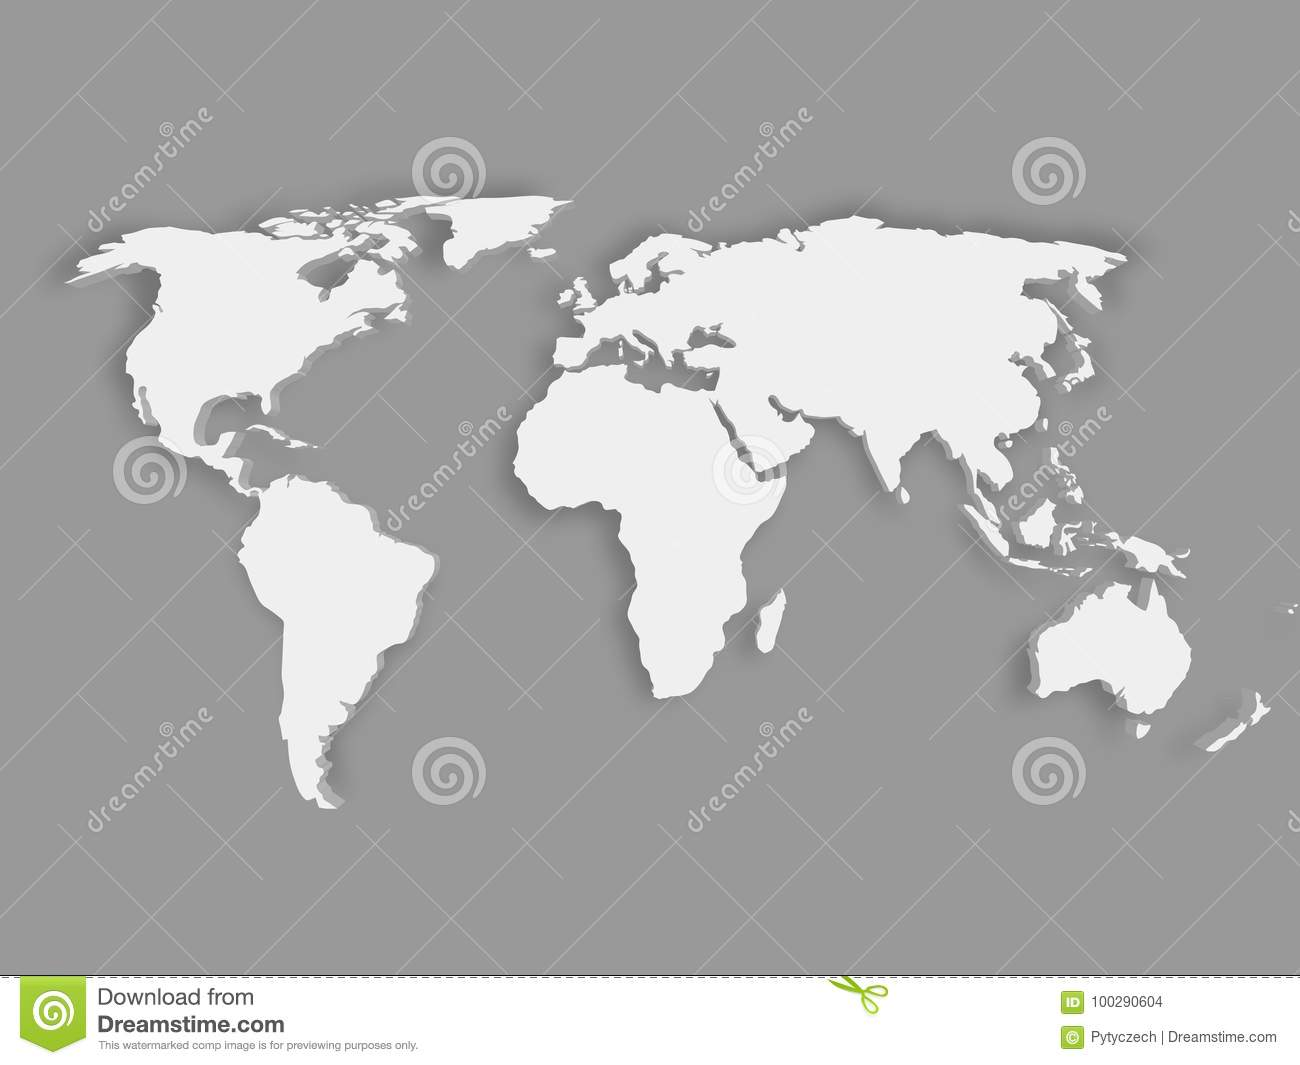 White 3d world map with dropped shadow on grey background stock royalty free vector download white 3d world map with dropped shadow on grey background stock vector illustration gumiabroncs Image collections